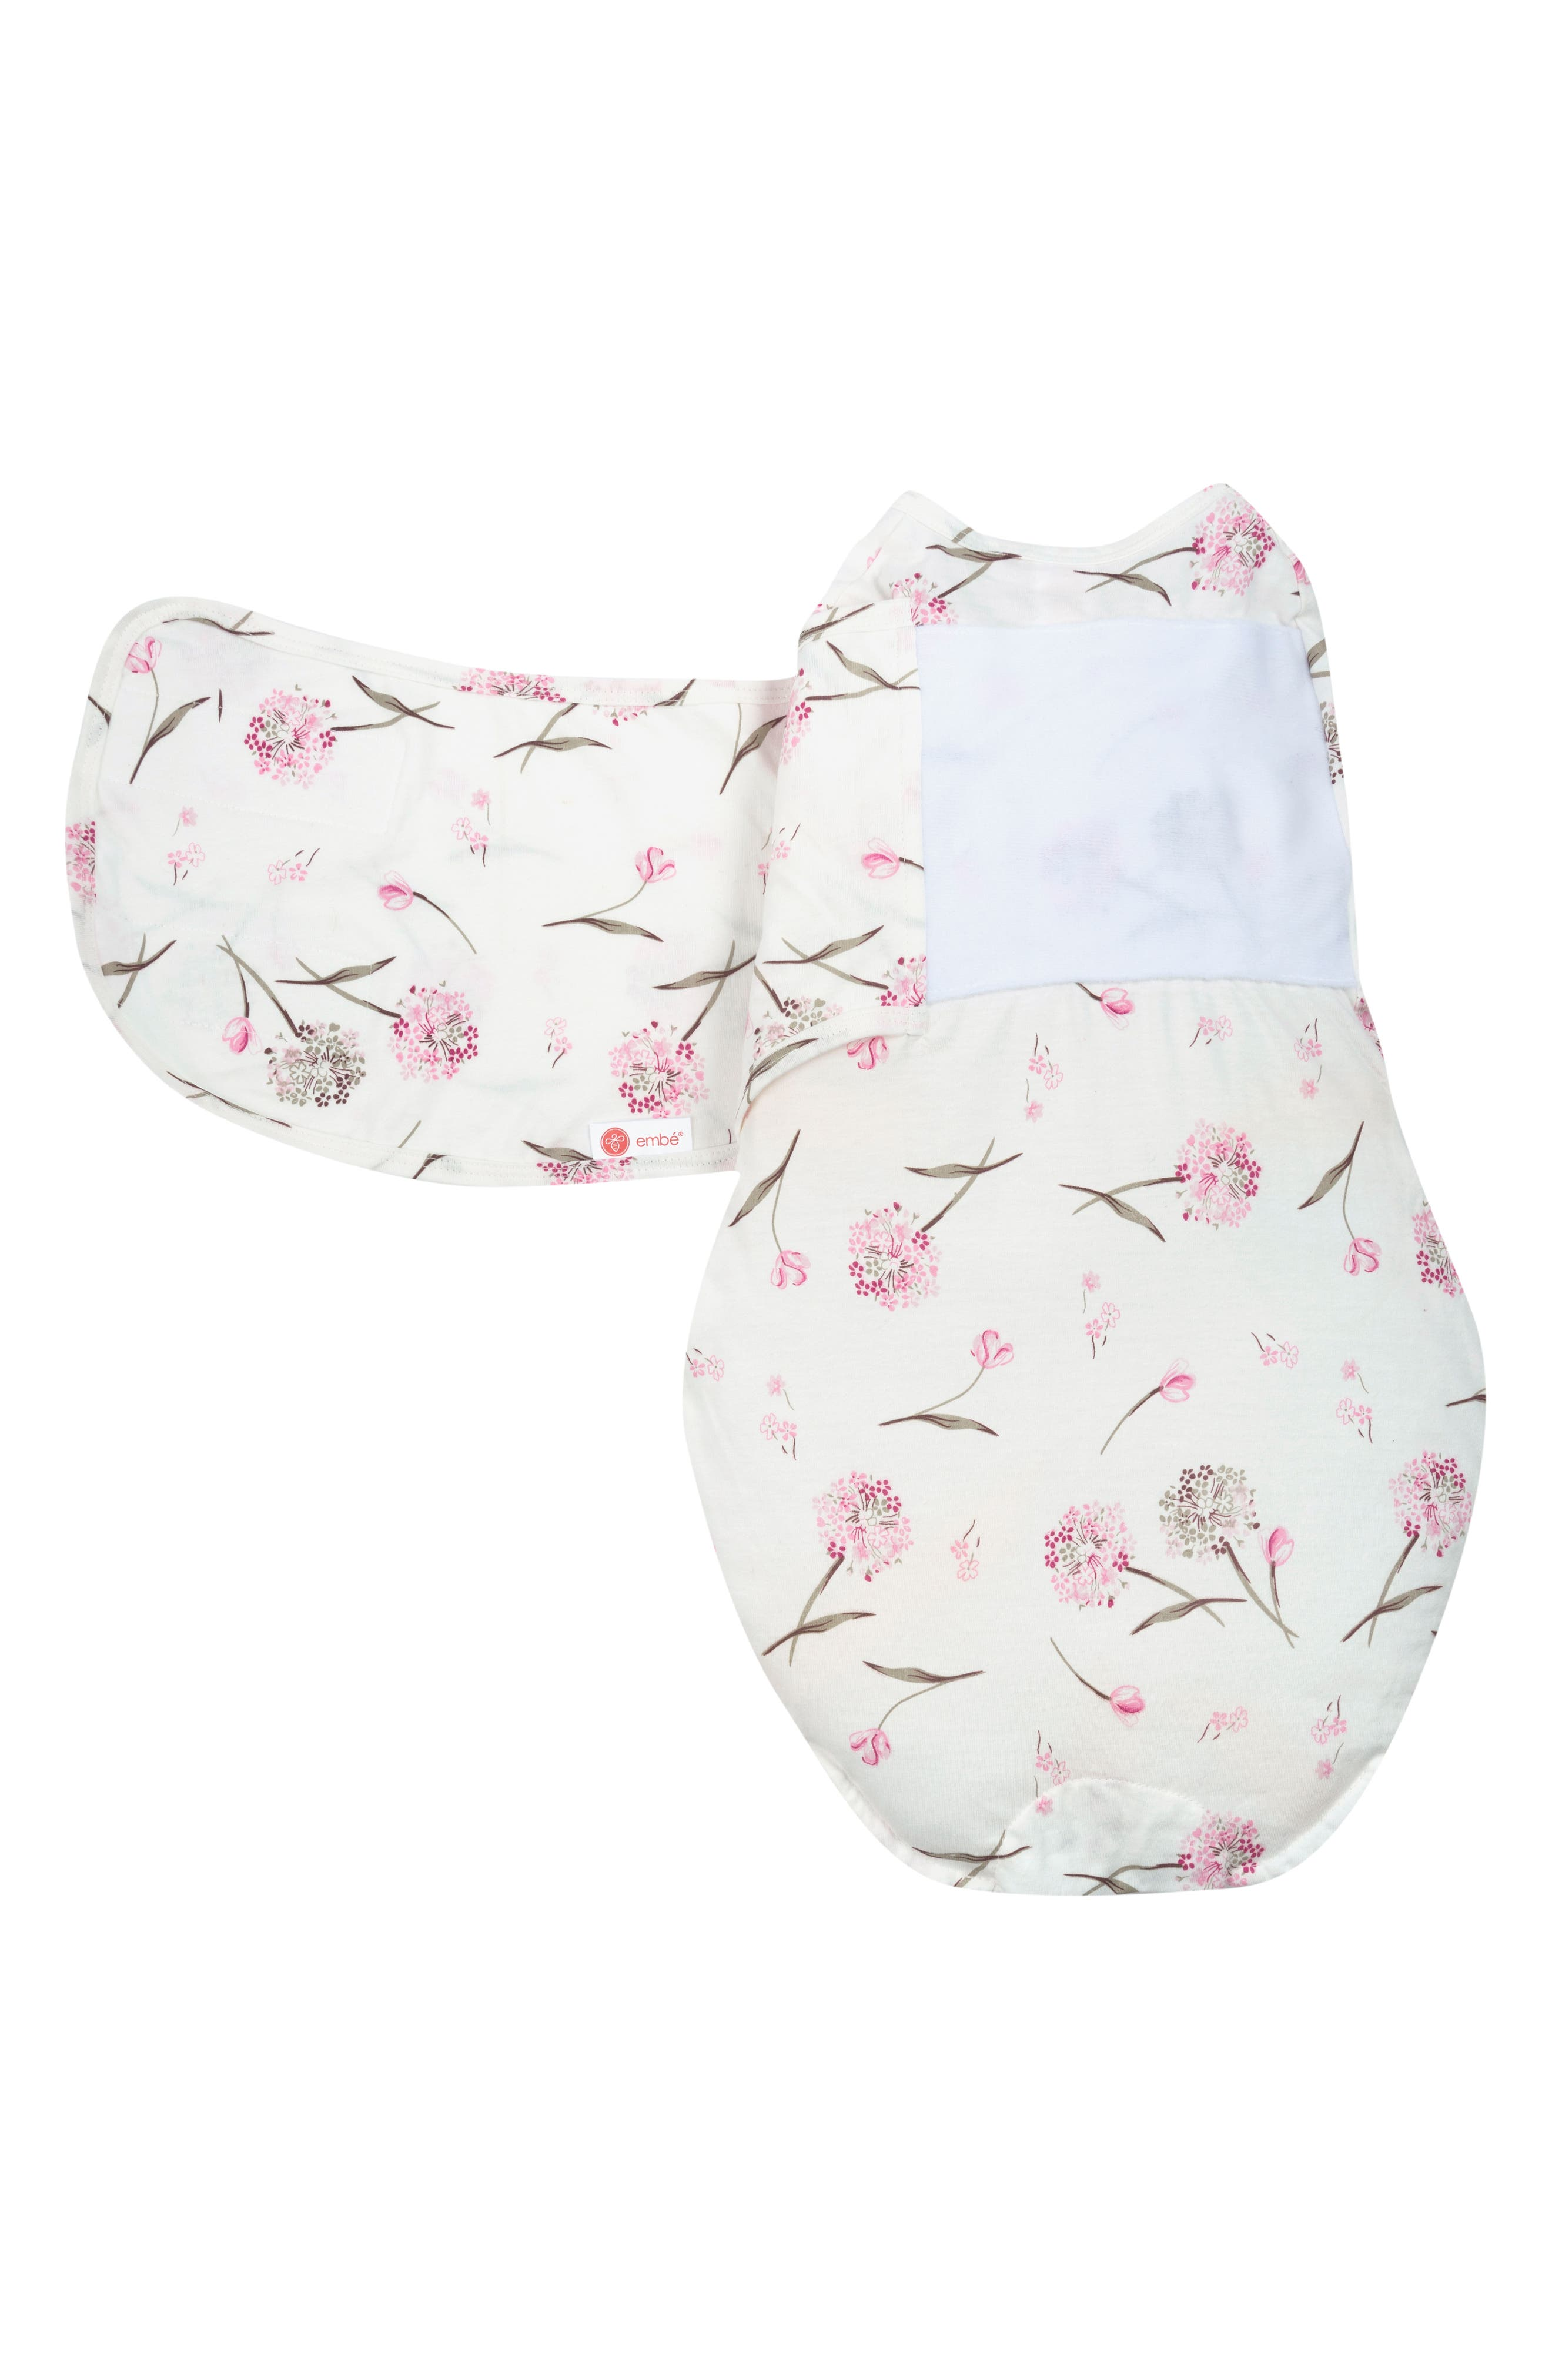 baby blankets quilts receiving swaddling nordstrom nordstrom